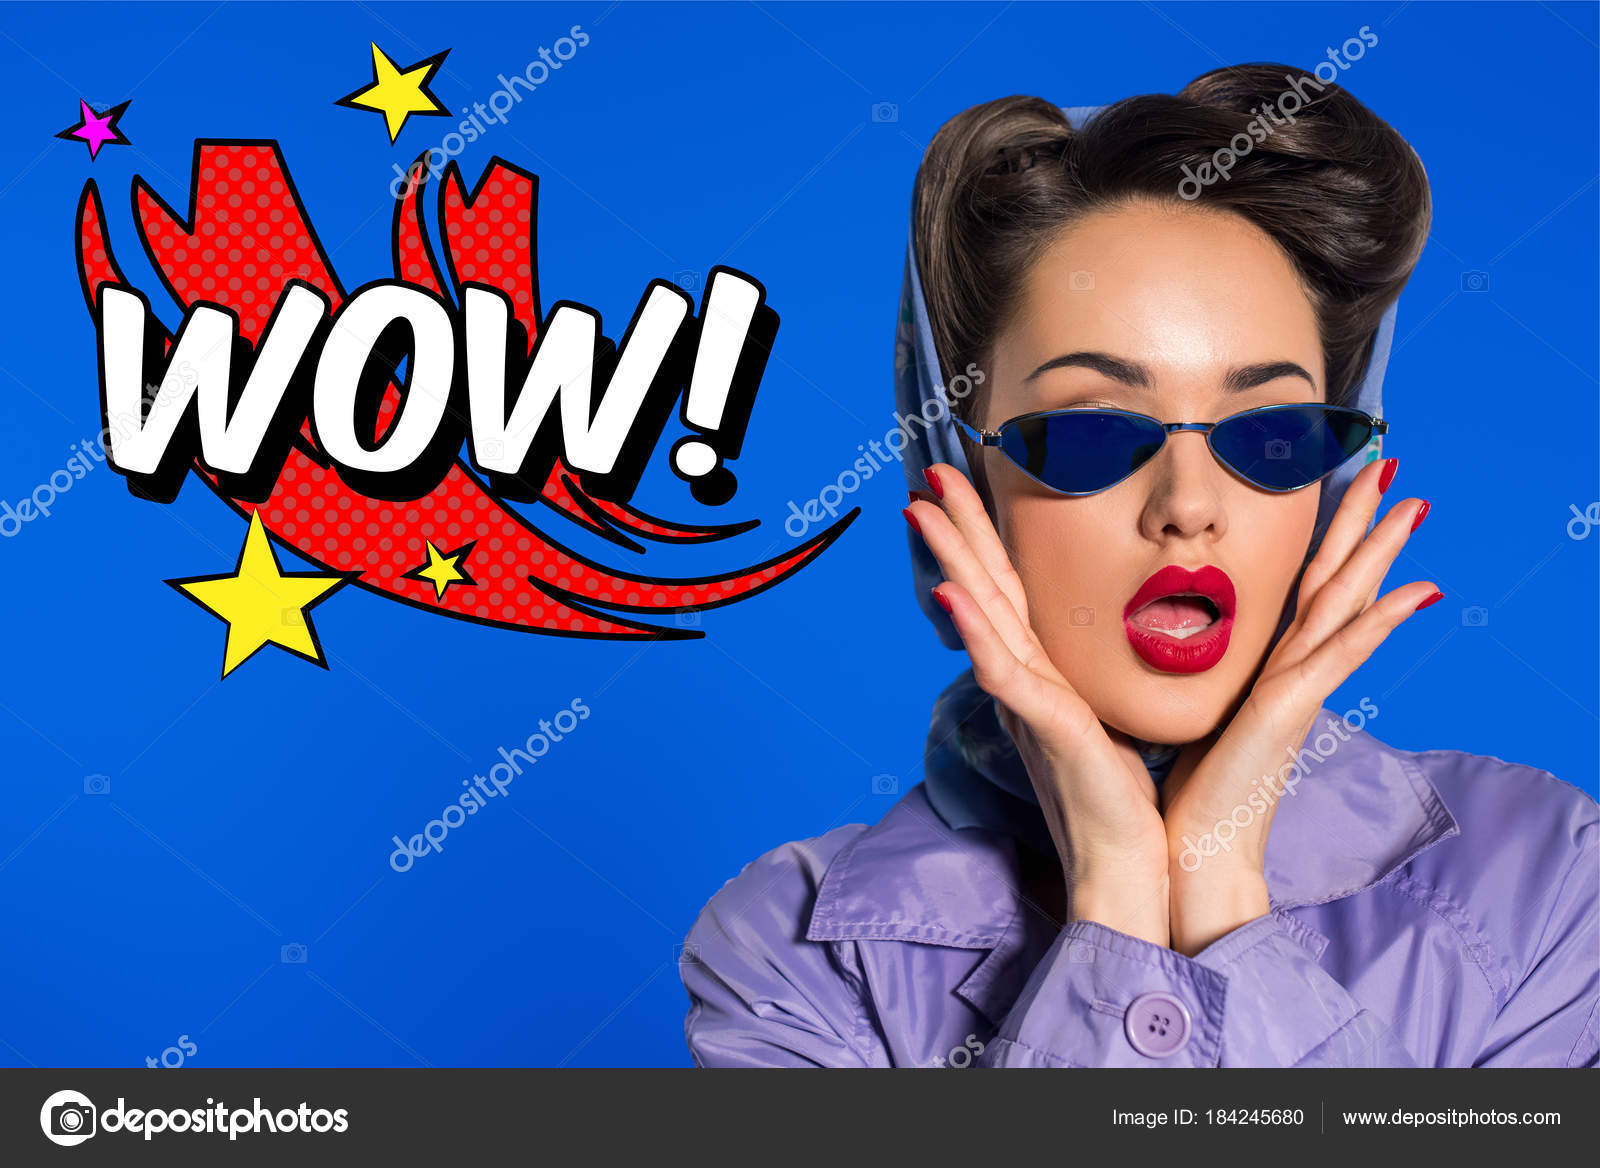 12,12 Wow Stock Photos   Free & Royalty free Wow Images ...